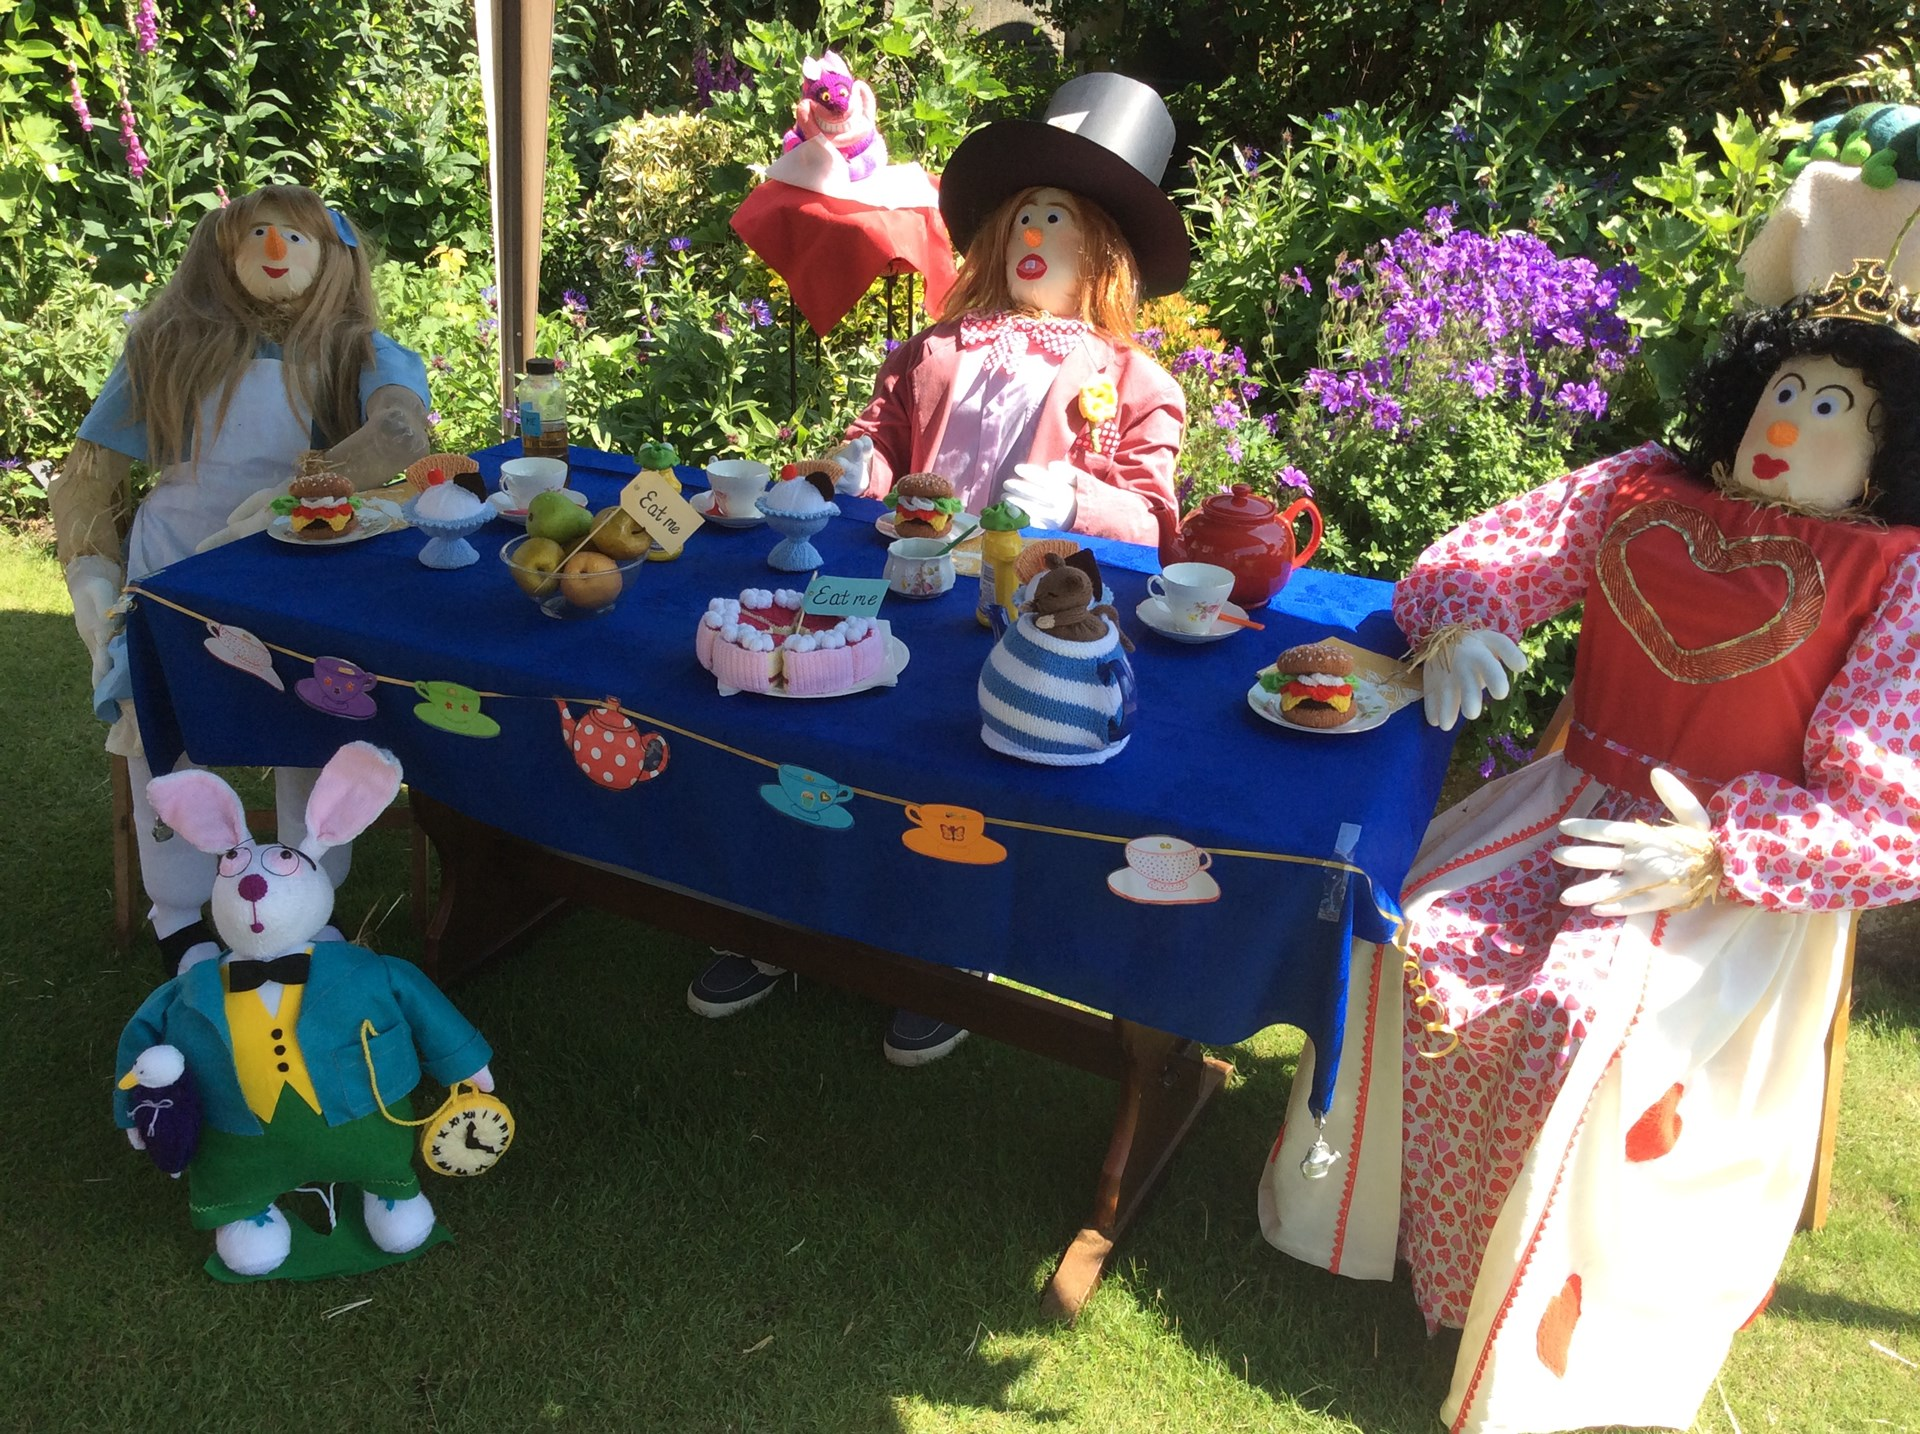 Market Bosworth Bowls Club Scarecrow Trail June 9th – 13th 2018